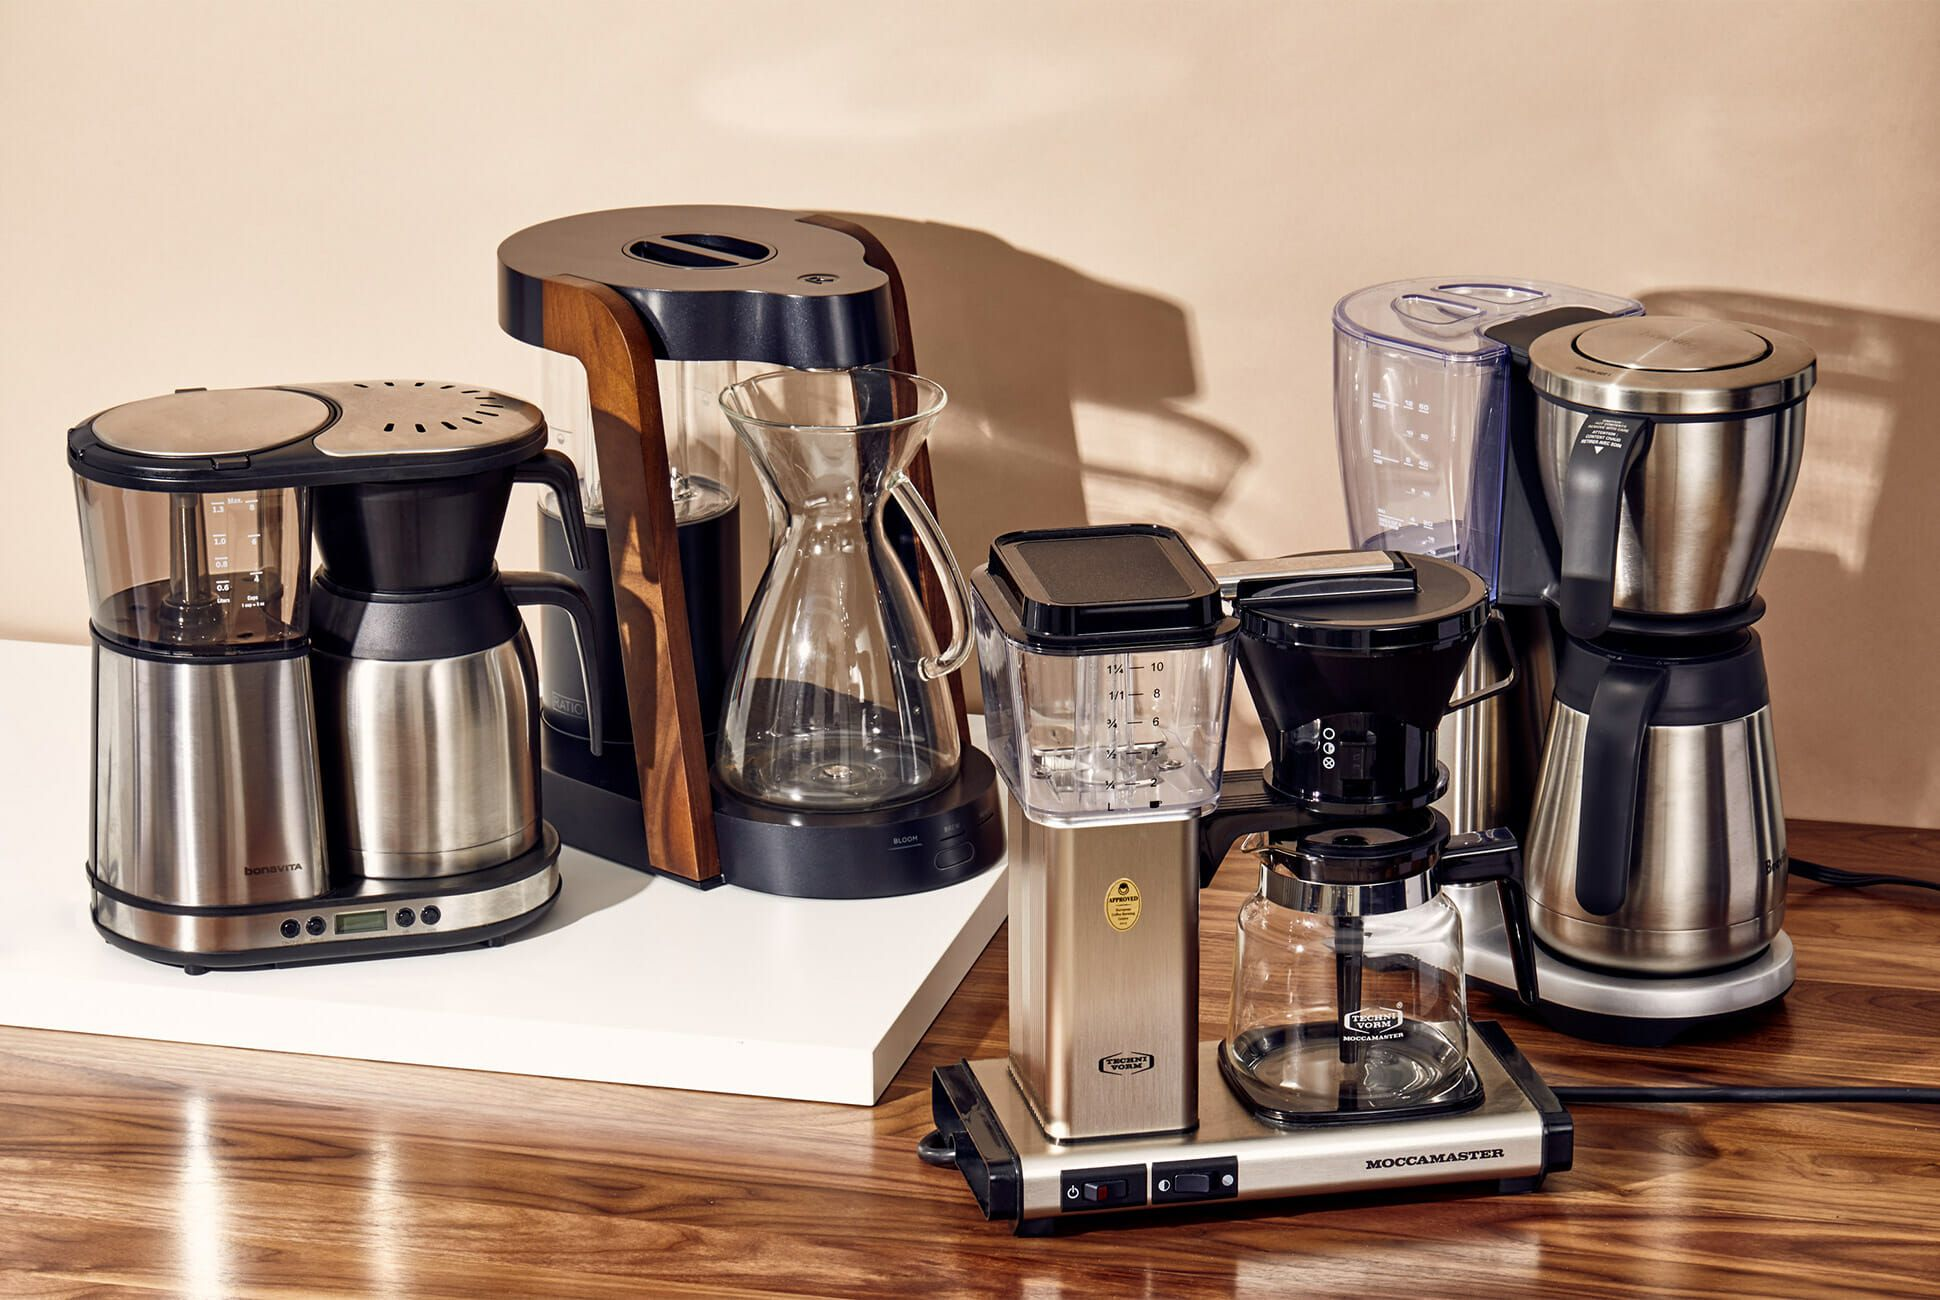 The 9 Best Coffee Makers of 2020